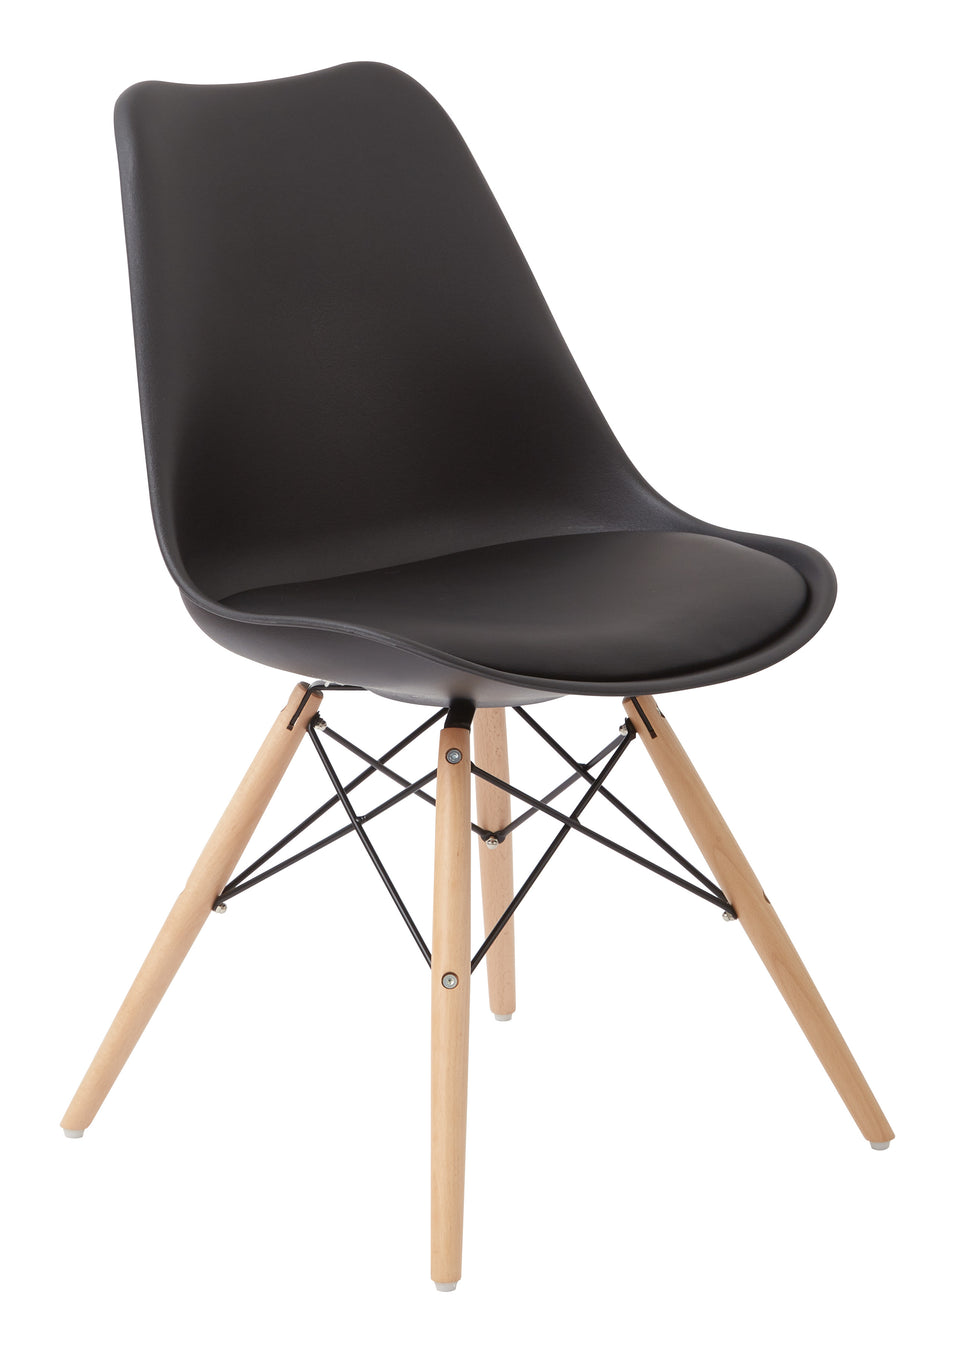 mid century modern aimes black bucket chair with natural post legs scandinavian design inspired from decurban.com